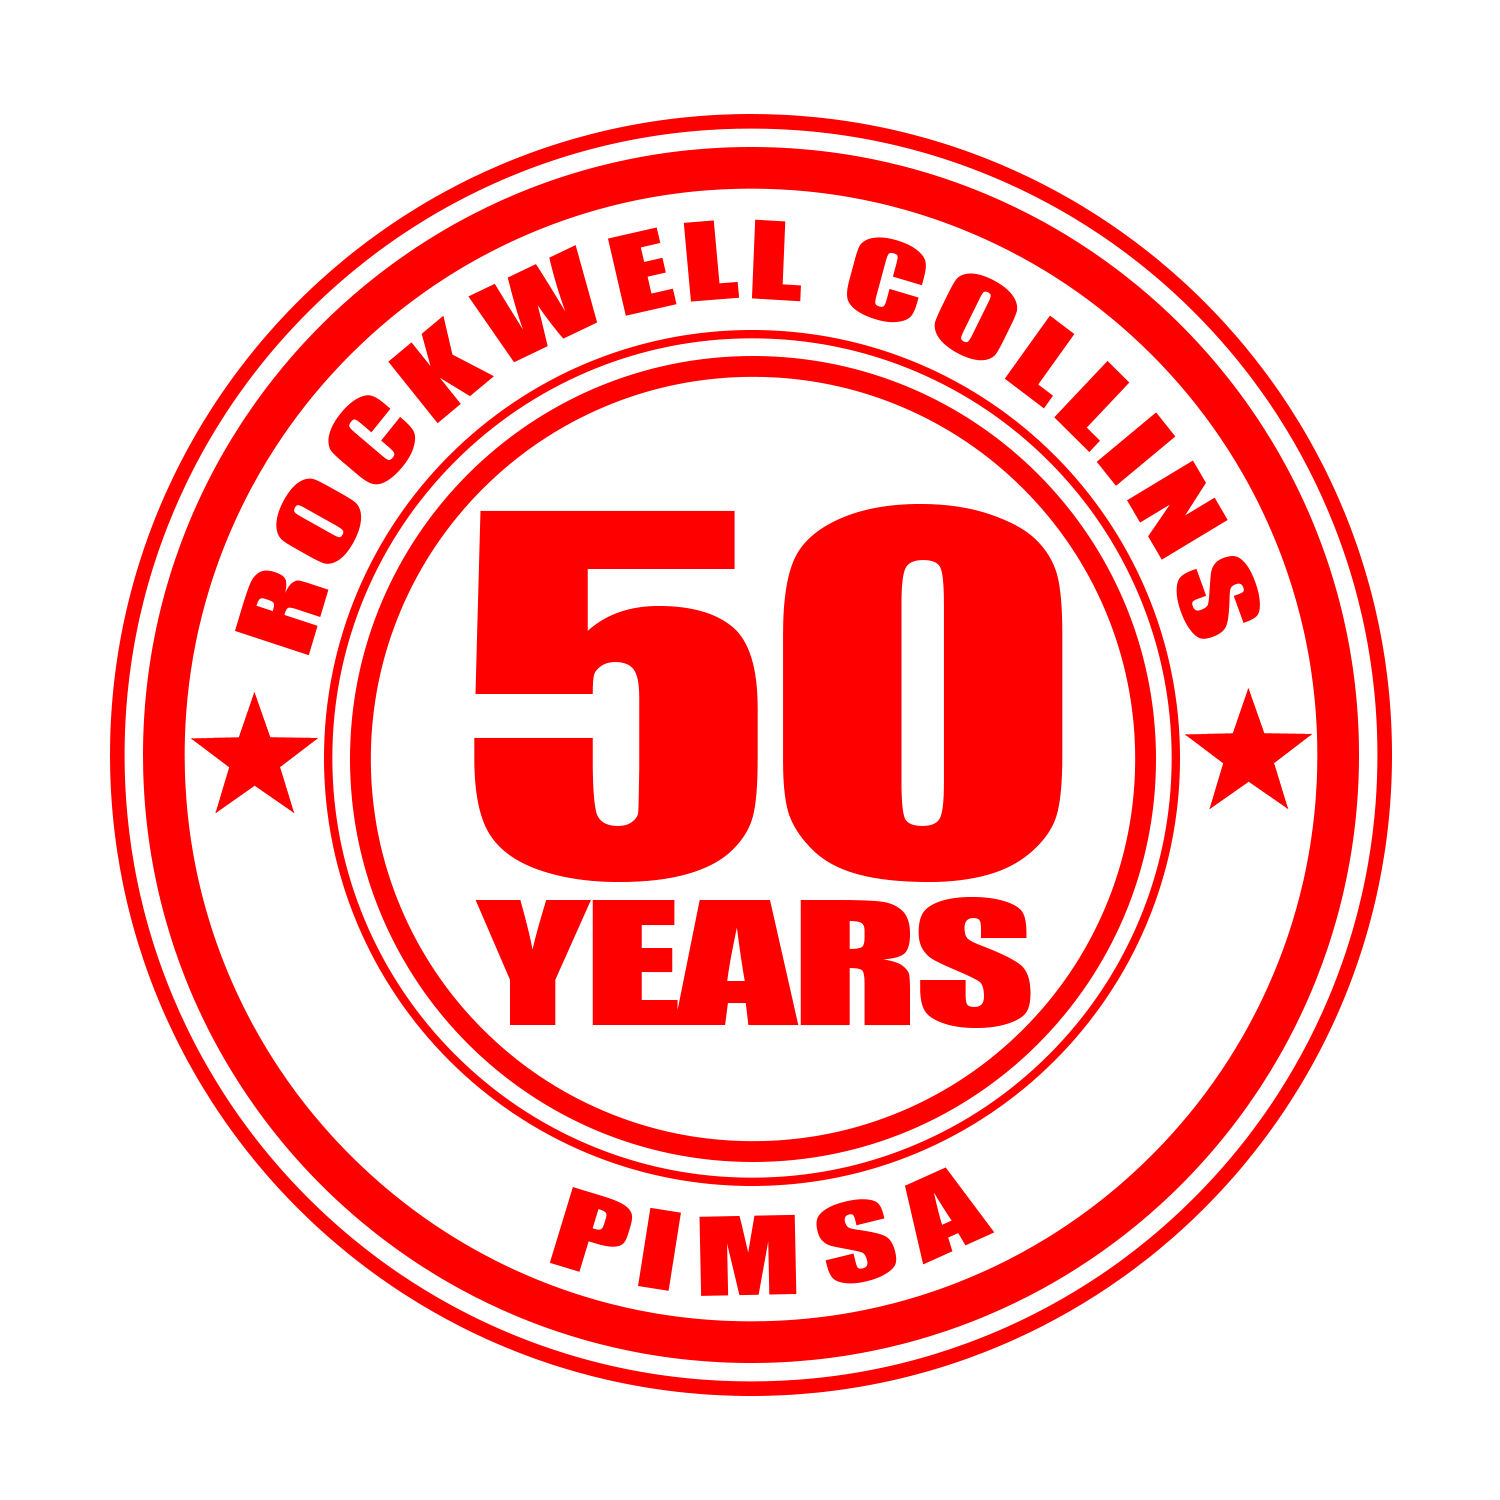 ROCKWELL SELLO PIMSA 50YEARS